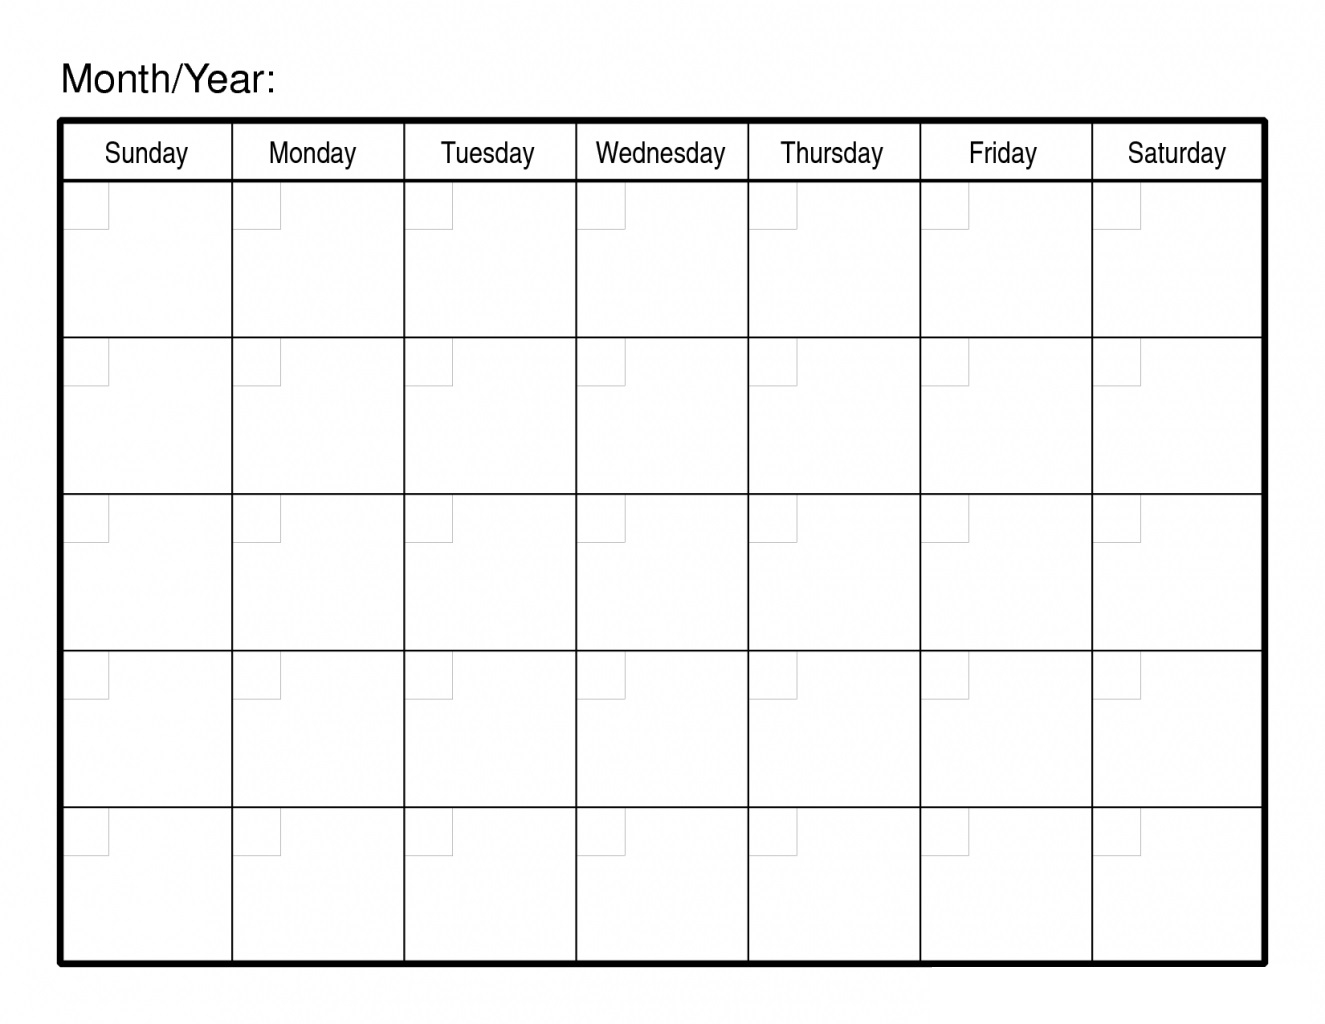 Daycalendar Mplate Schedule Printable | Smorad in Day By Day Calendar Printable